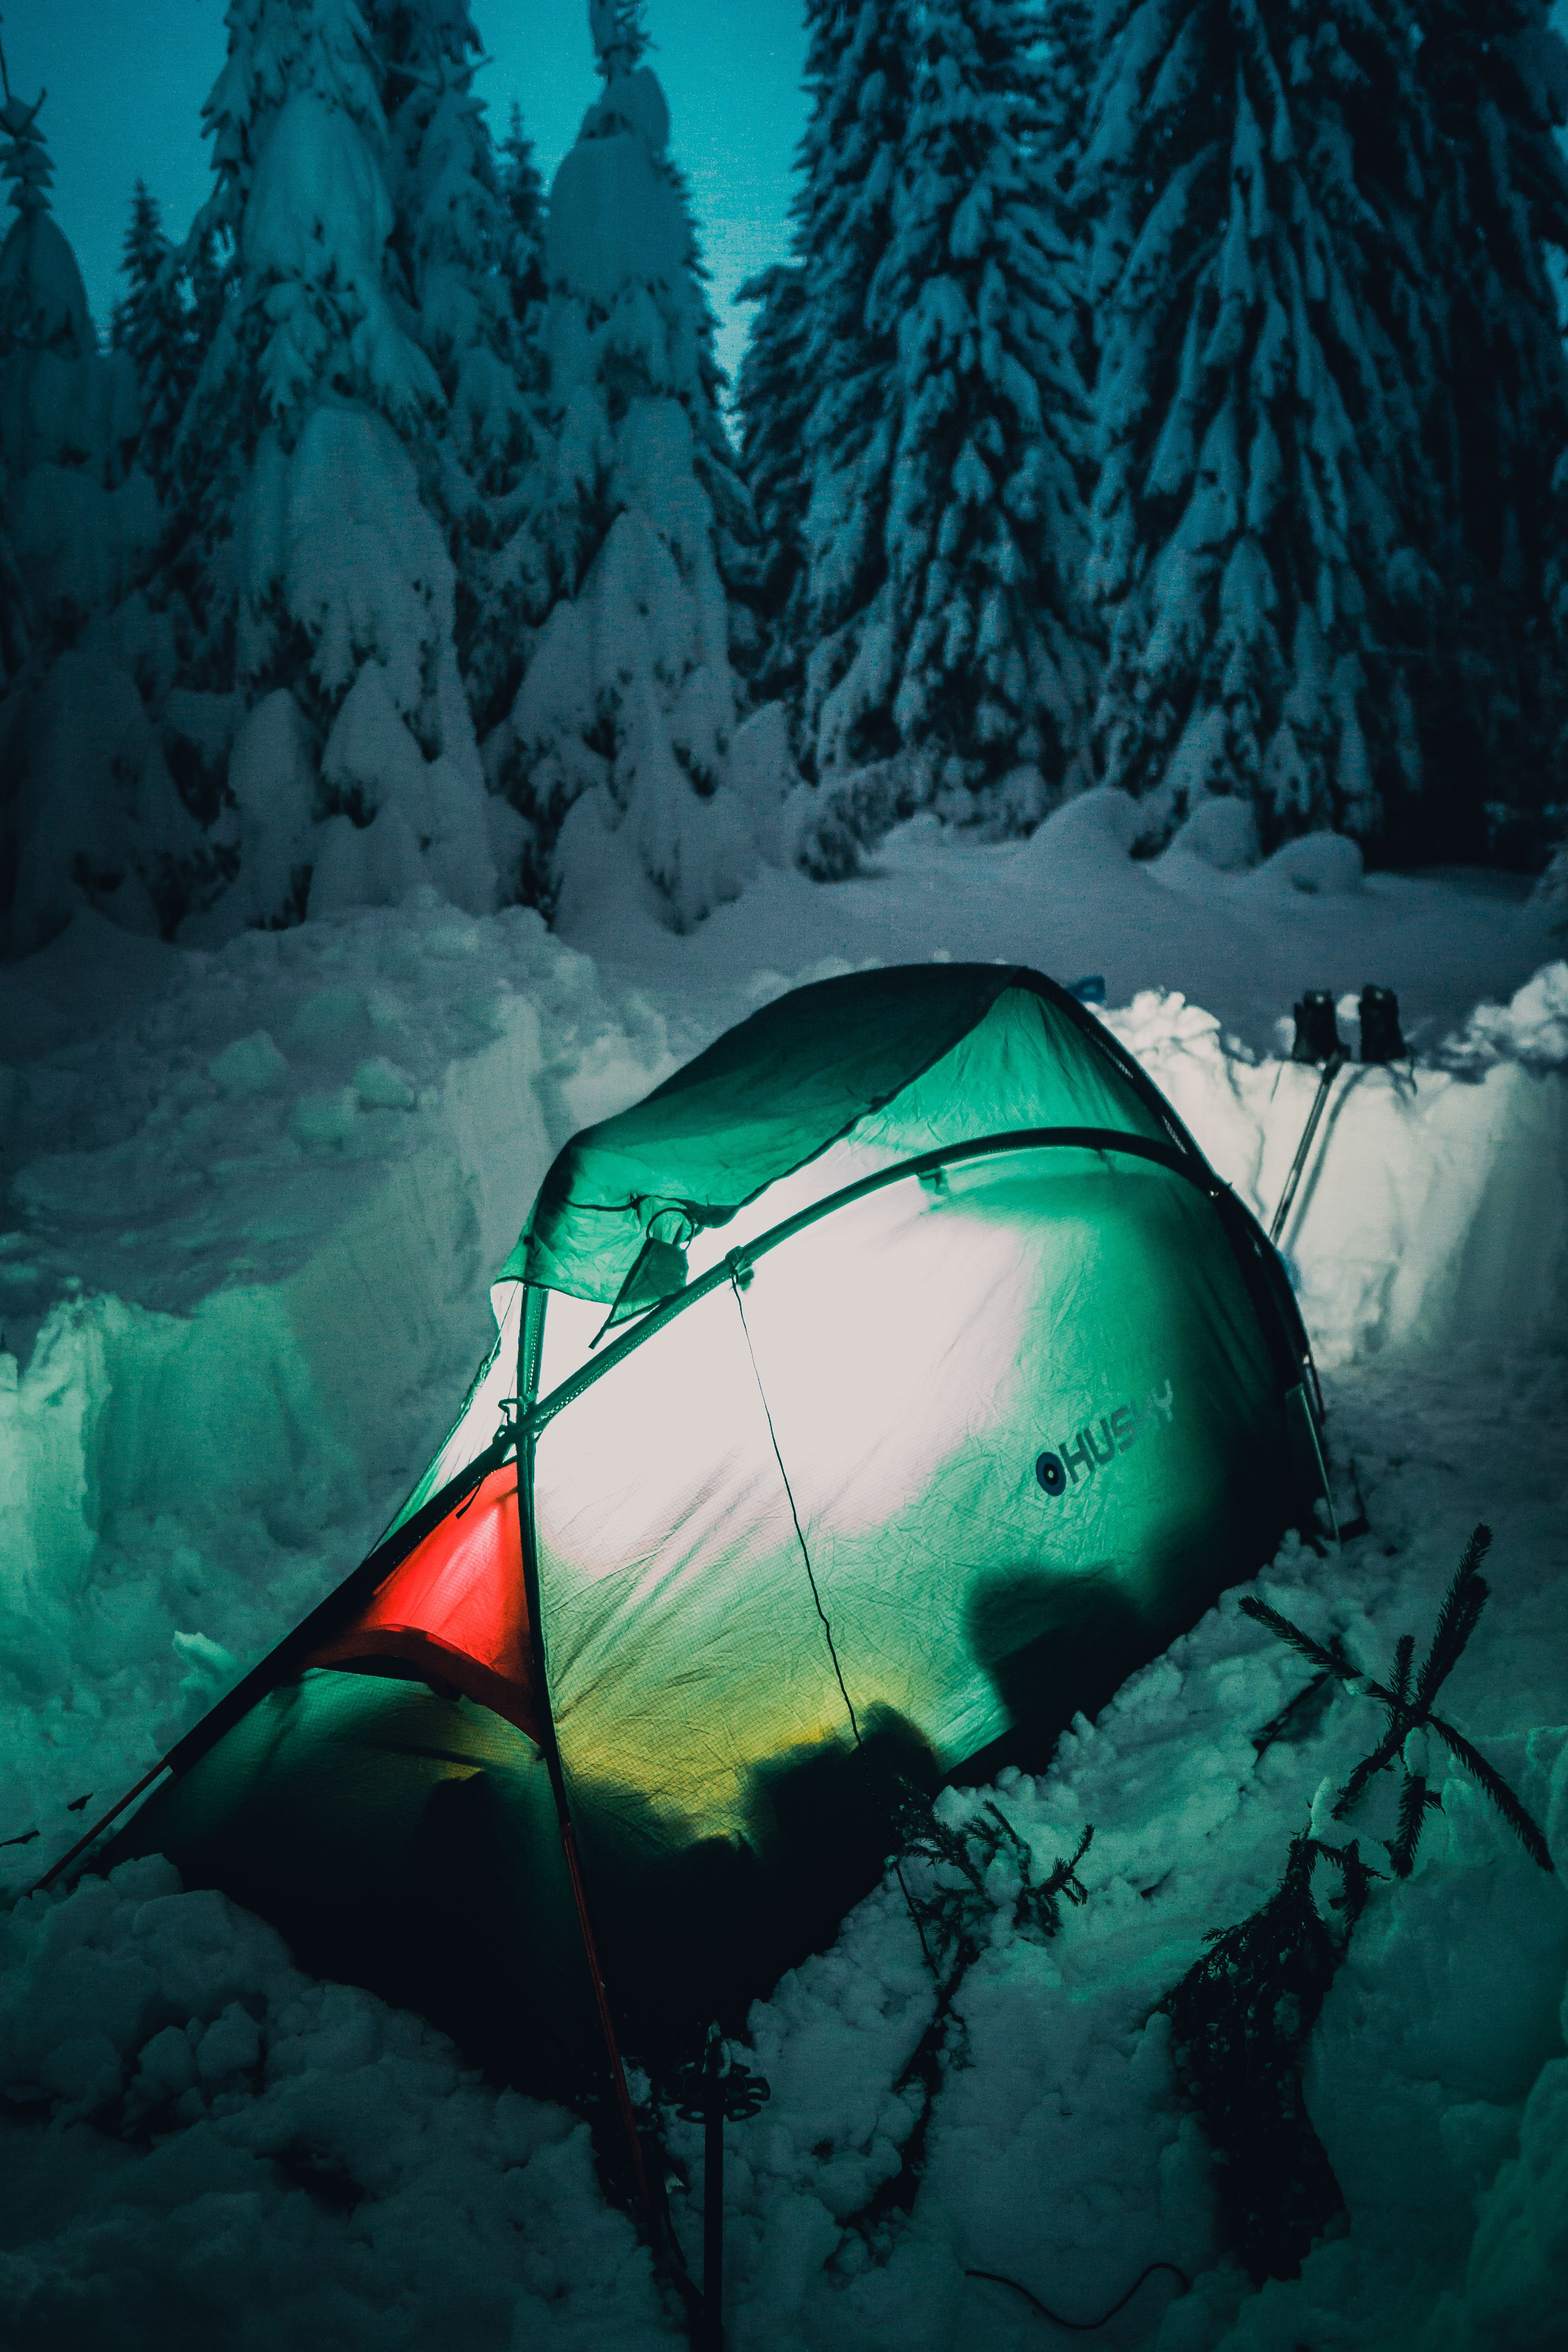 Green tent near pine trees during winter - Camping More ...